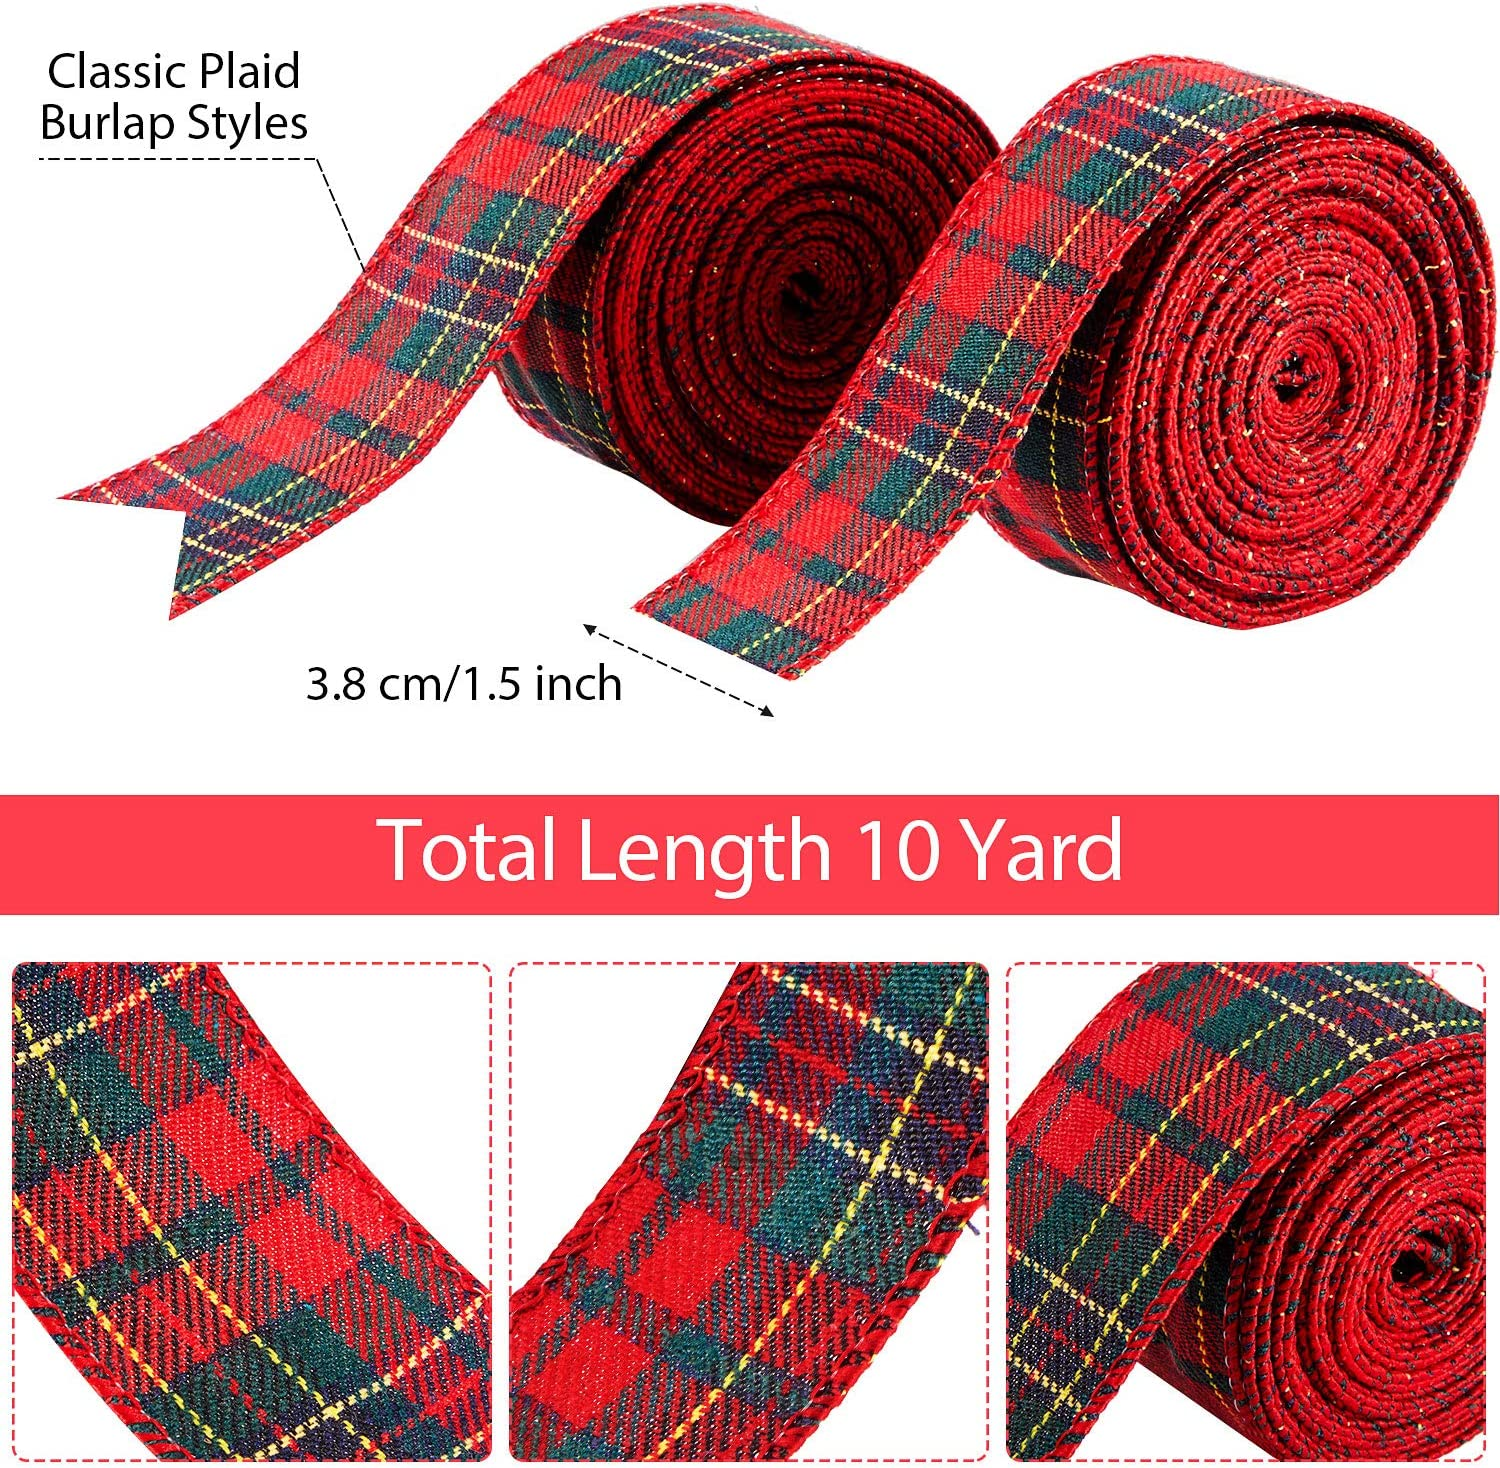 Tea Dye Red Gingham Prim 2 12 Wired Ribbon Christmas Craft Wire Edged Ribbon TWENTY FIVE YARD Roll Red and Beige Teadye Check